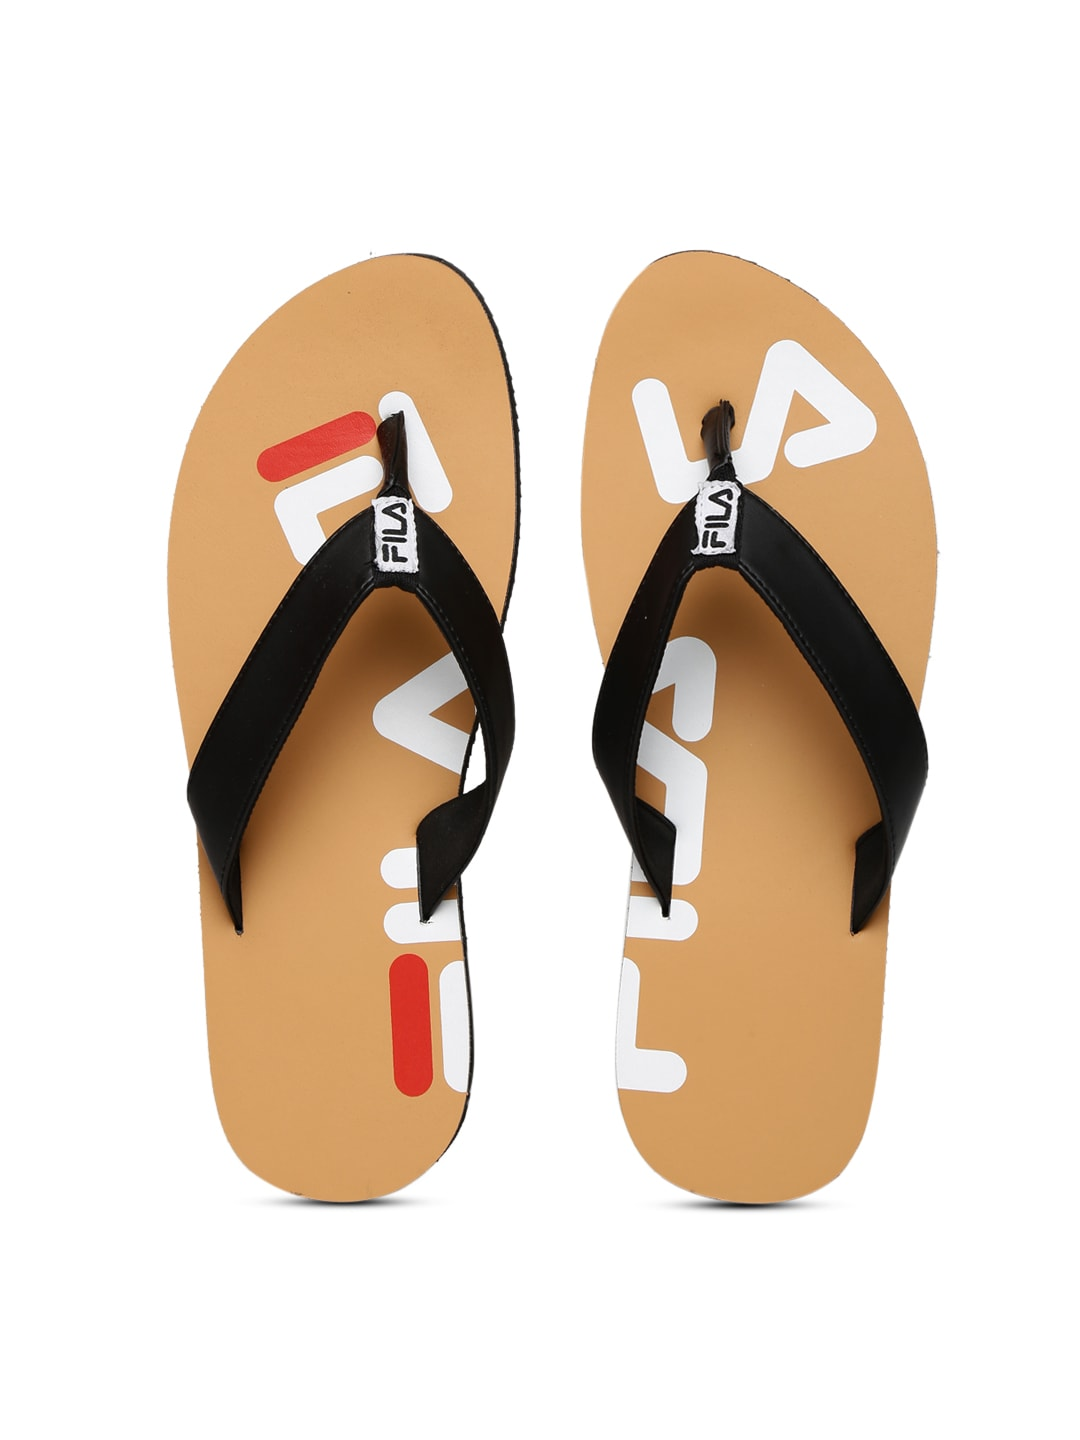 FILA Men Black & Brown Printed Spread Flip-Flops image